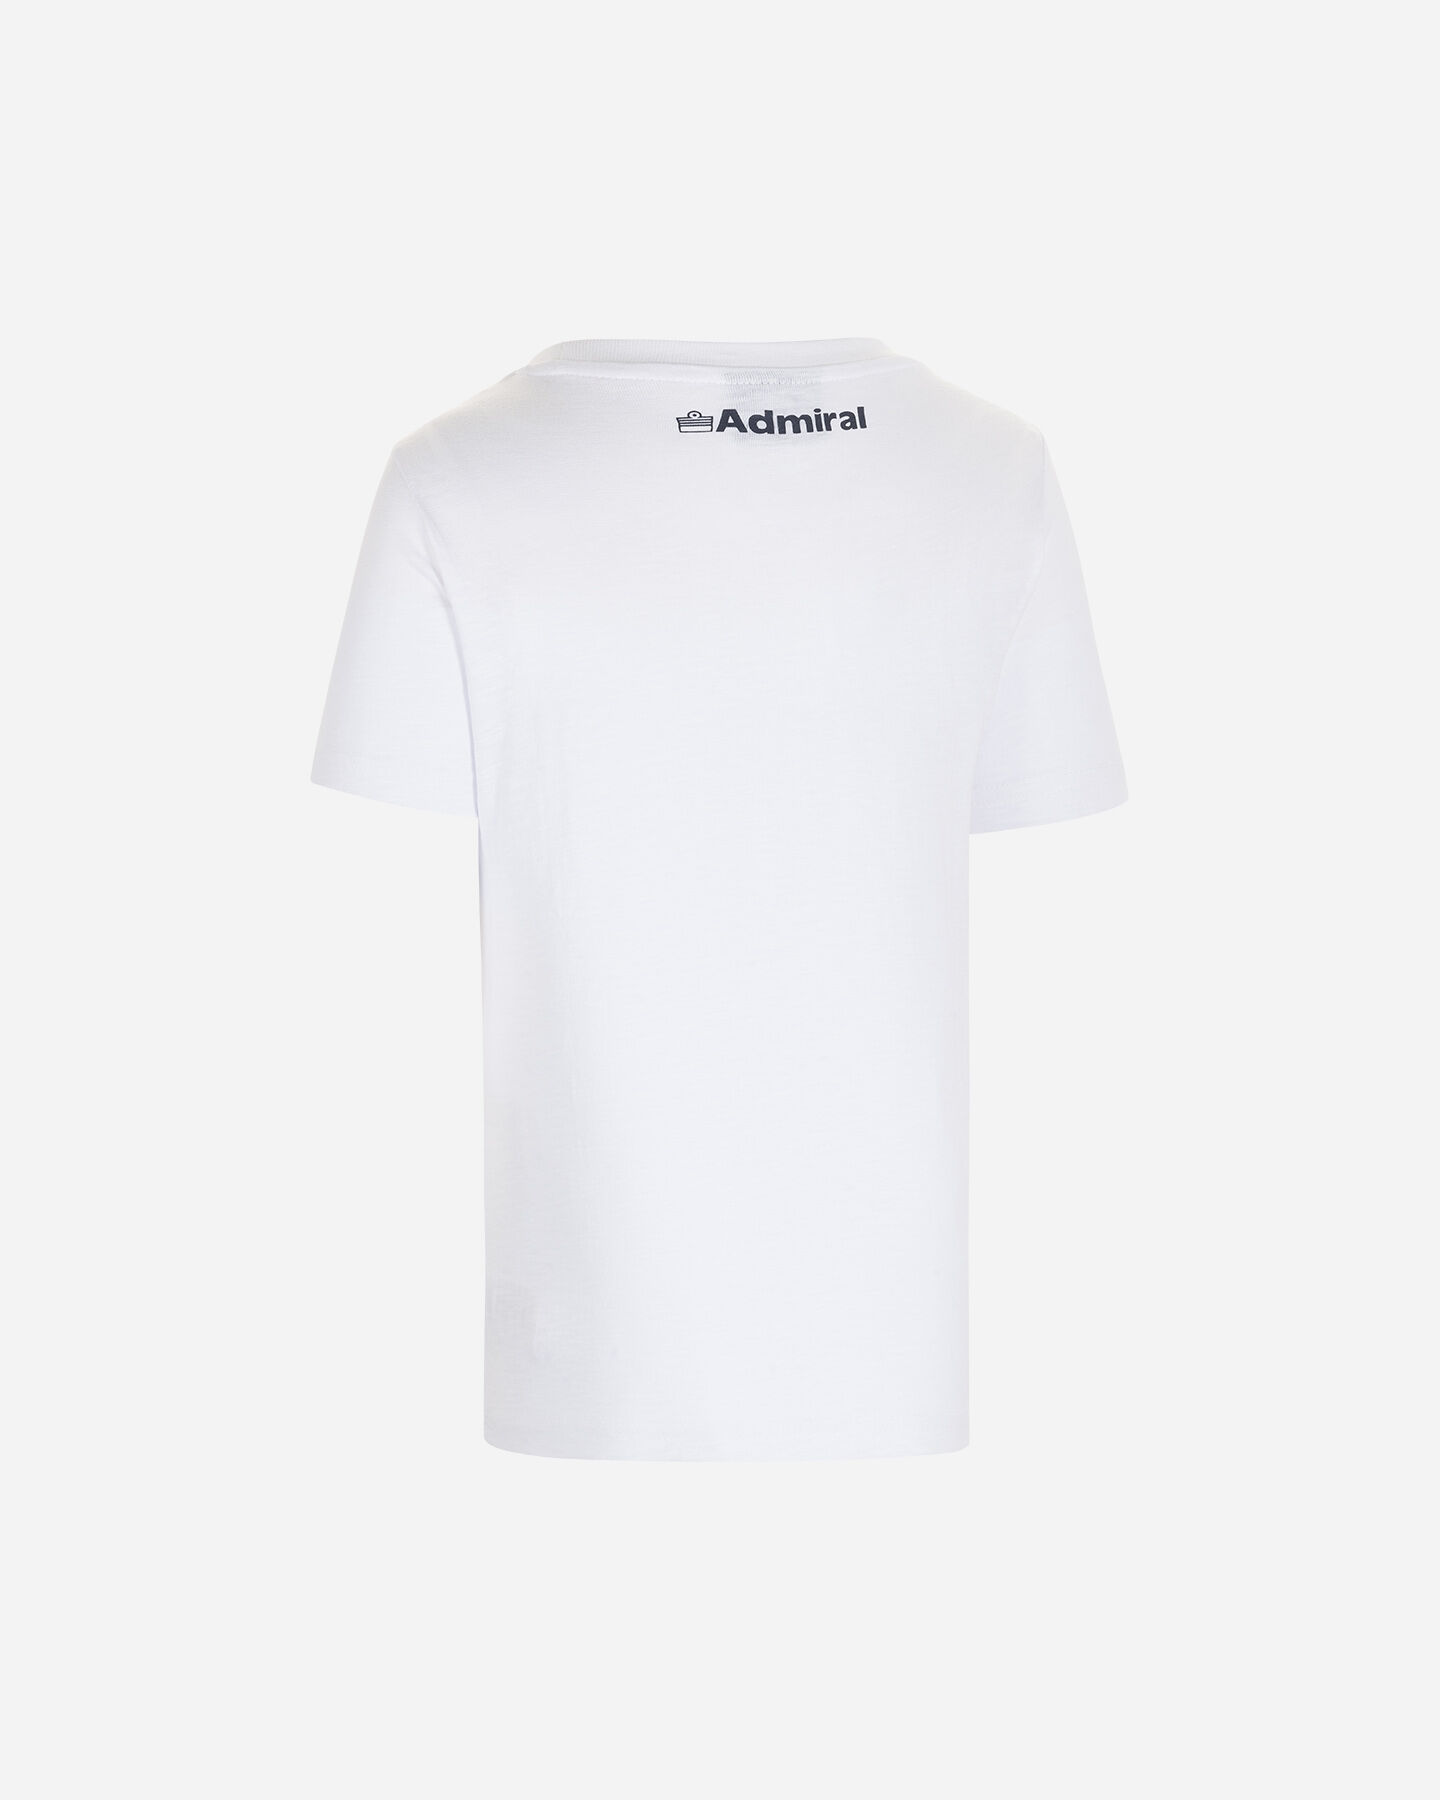 T-Shirt ADMIRAL WILD FREE FLAG JR S4087653 scatto 1